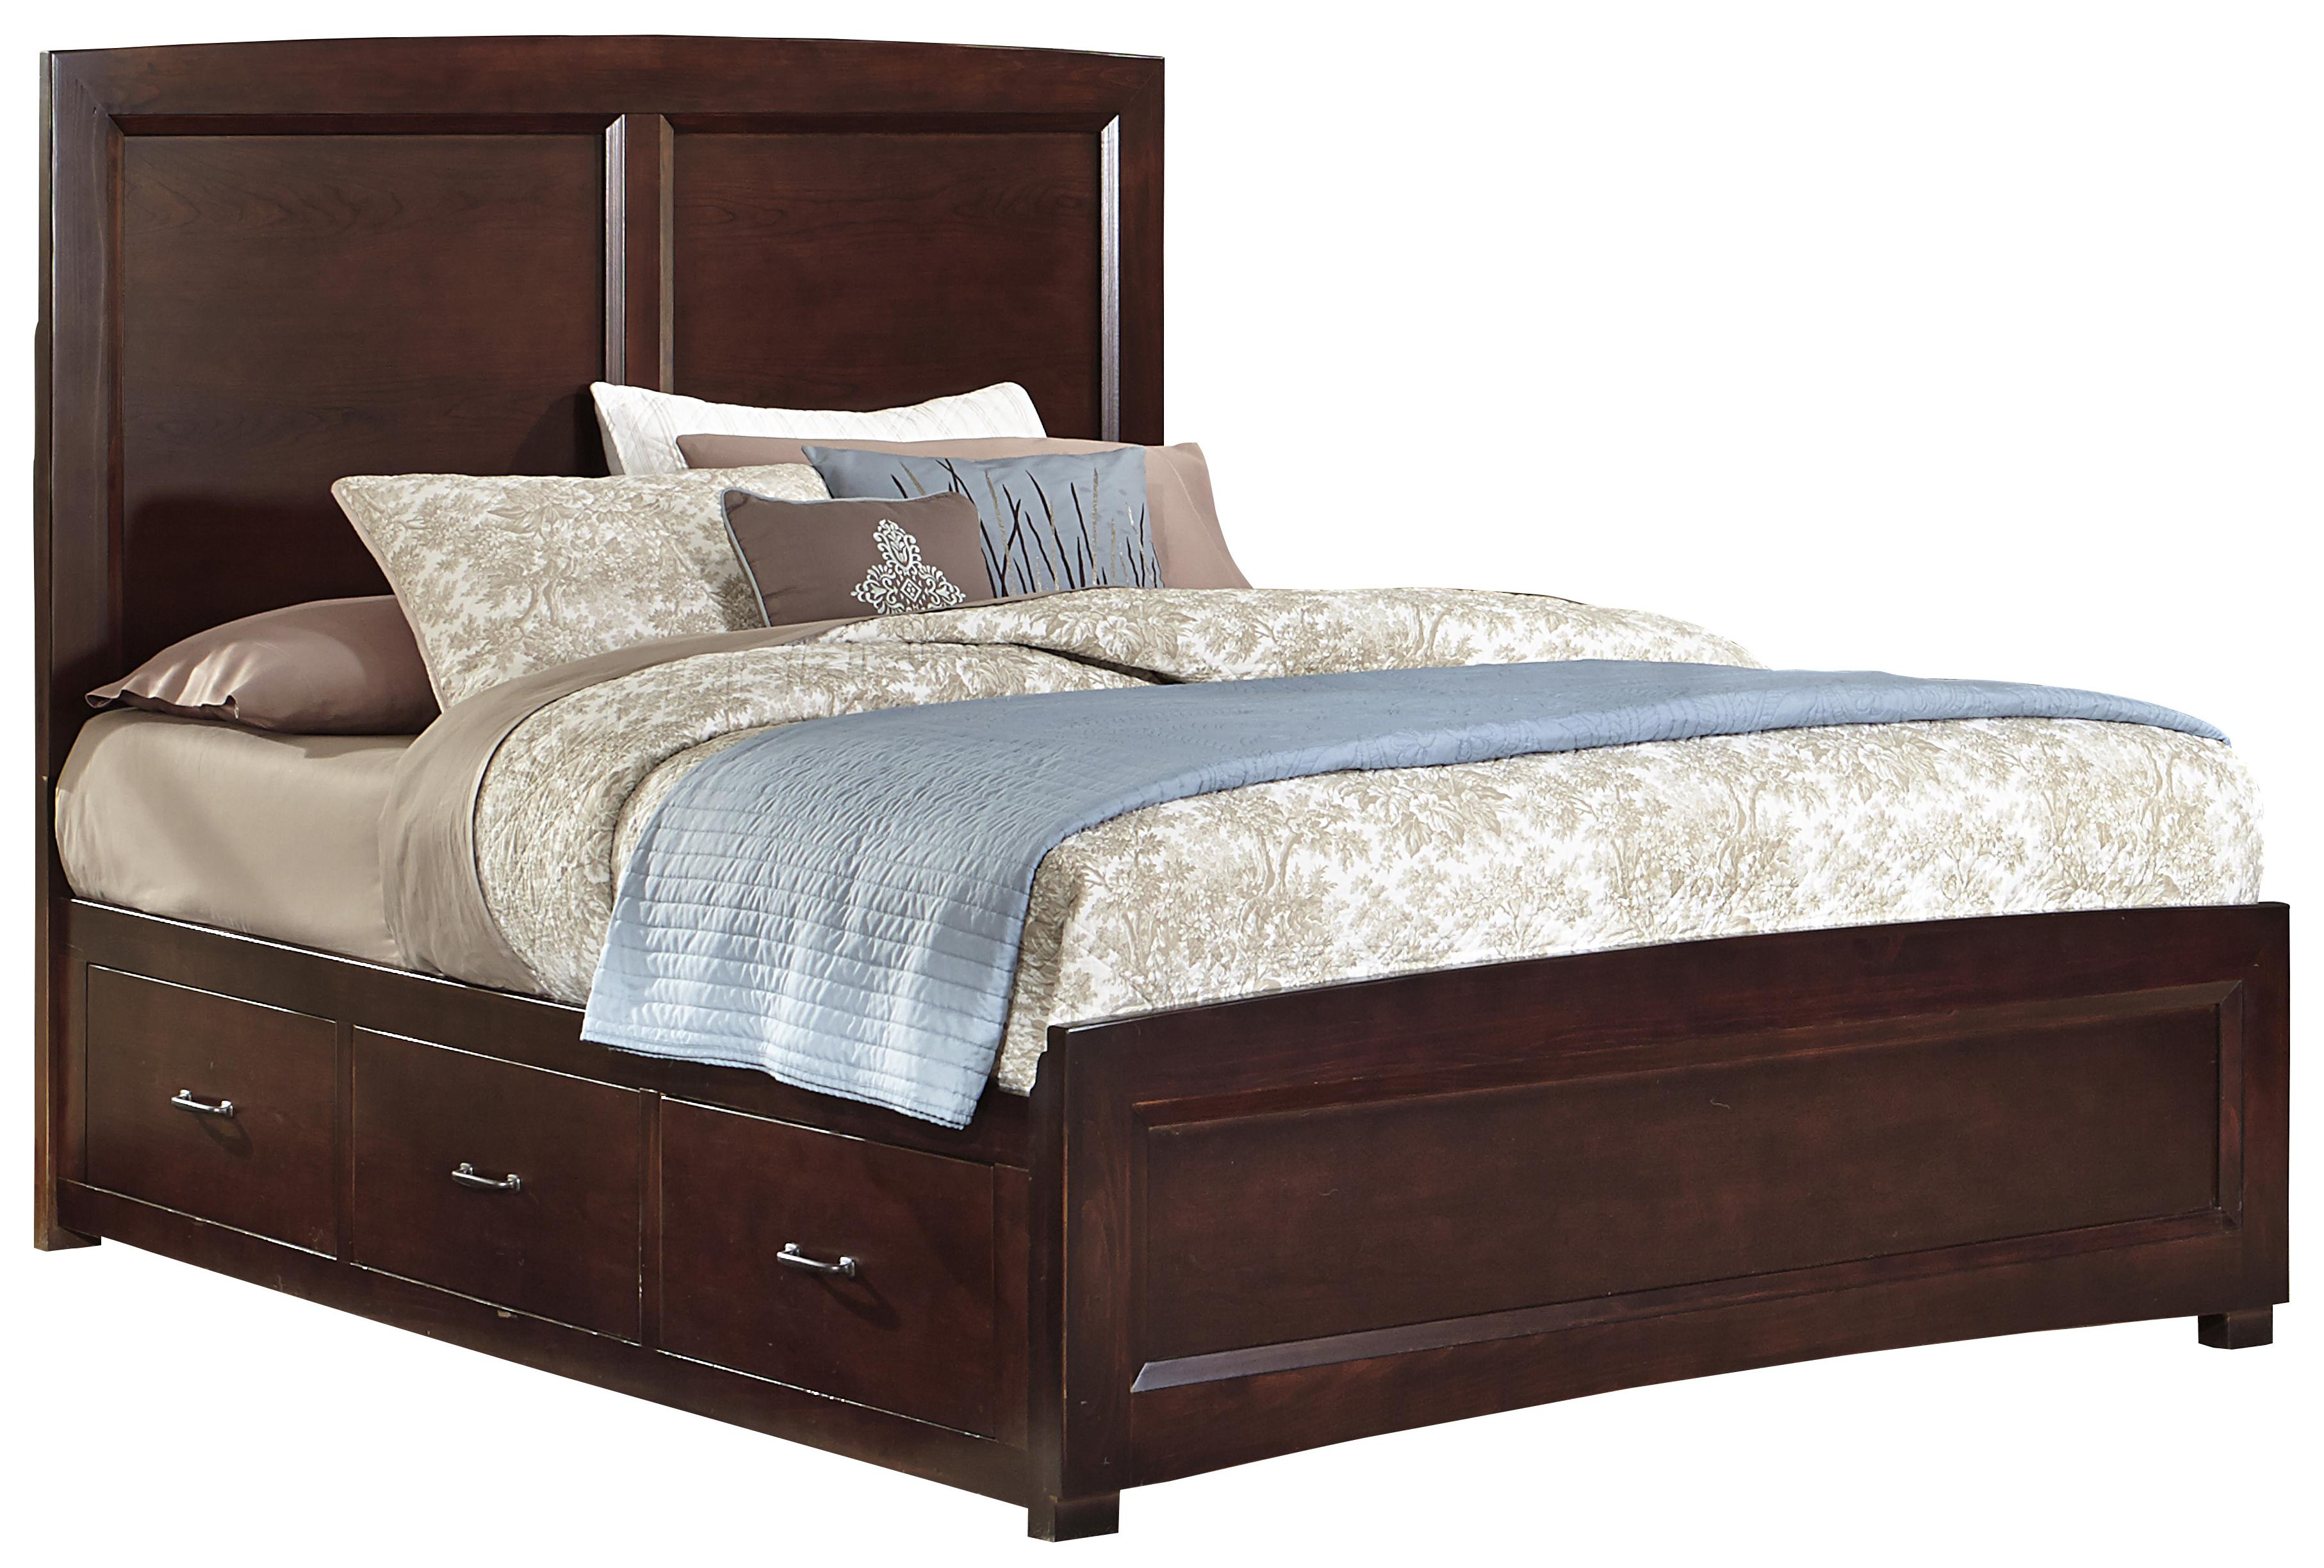 Vaughan Bassett Transitions Queen Panel Bed with 1 Side Storage - Item Number: BB68-558+855+082B+082C+555T